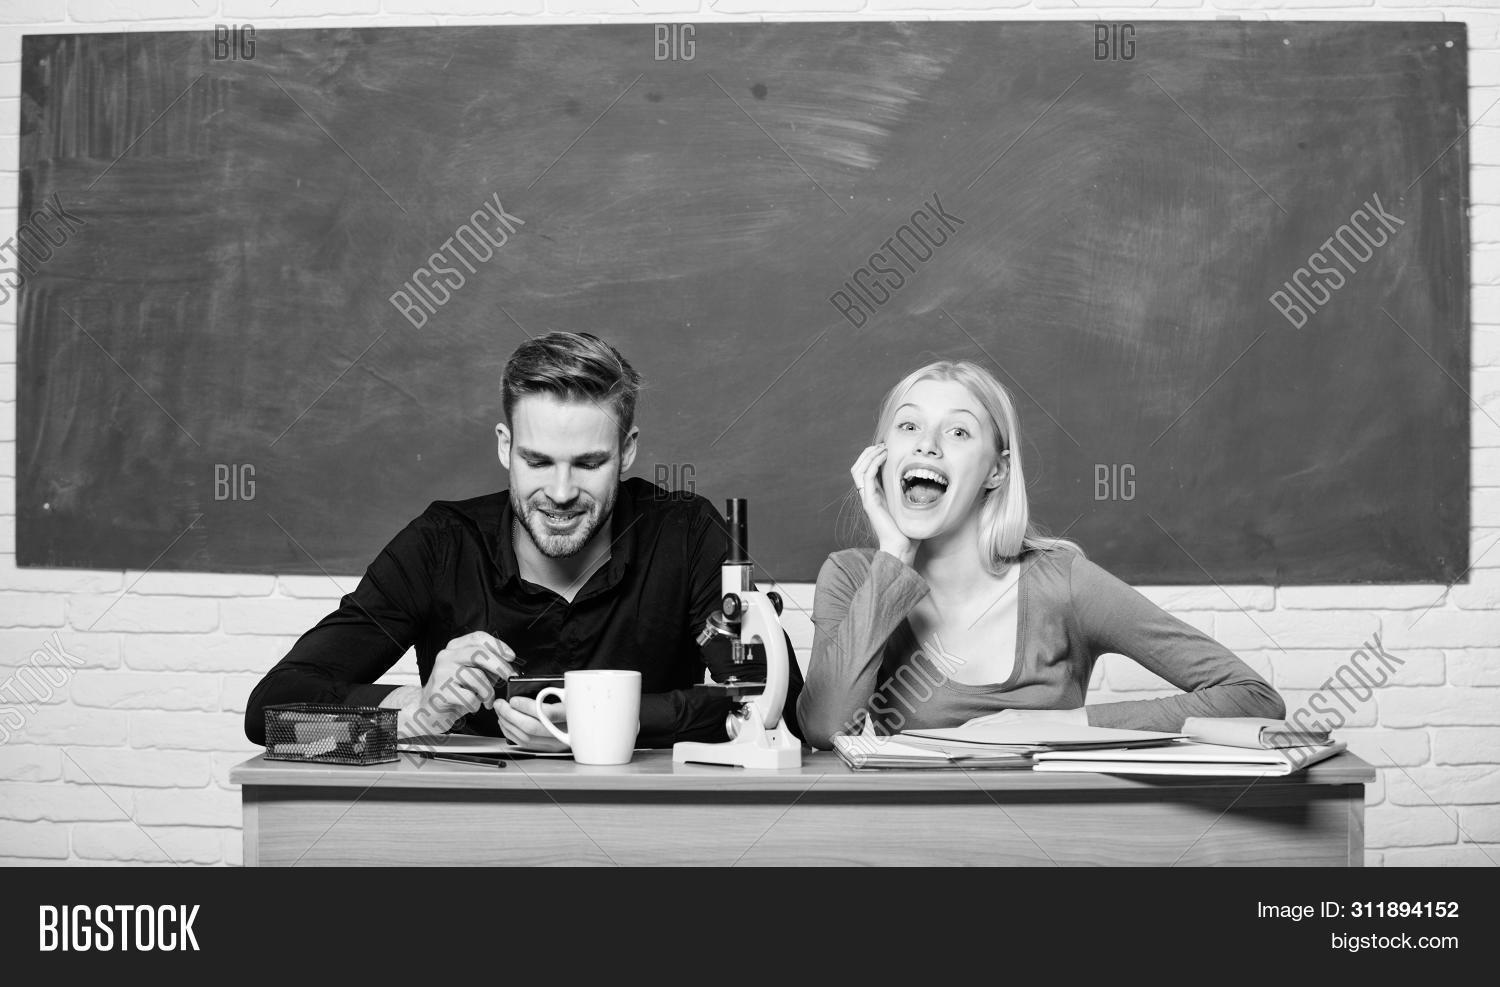 Scientific Experiment. Guy And Girl At Desk With Microscope. Studying In College Or University. Biol